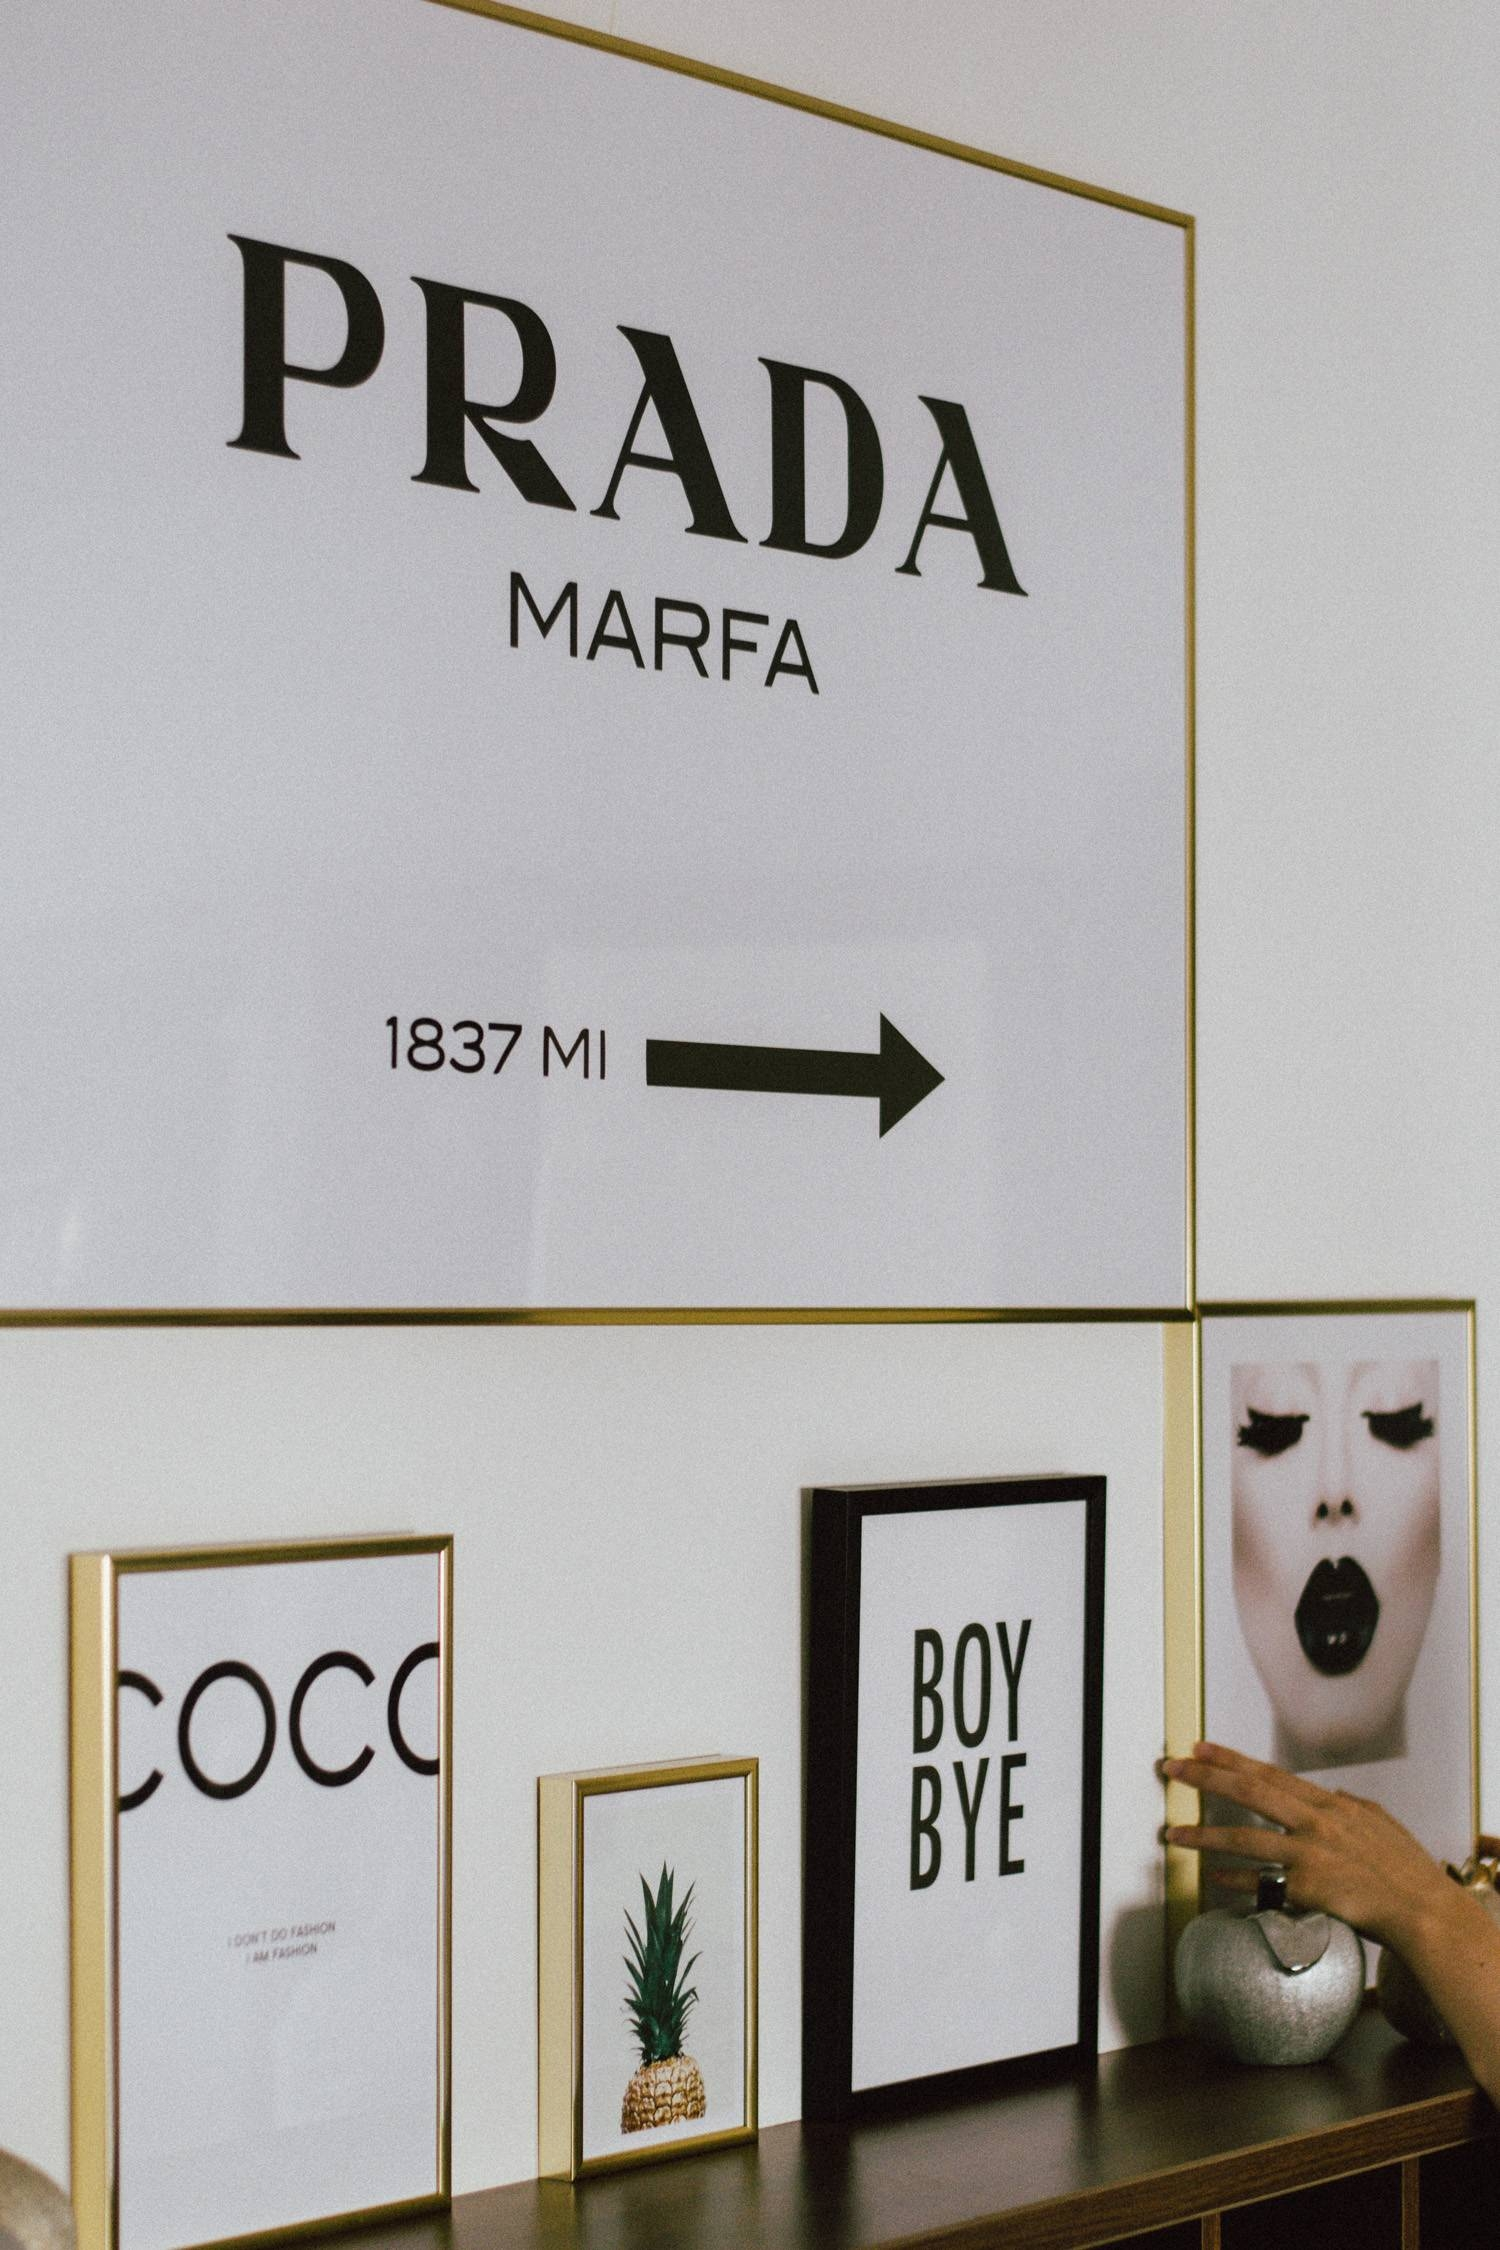 The Easy Way To Redecorating Your Home With Prints • Couturezilla For Most Popular Prada Marfa Wall Art (View 22 of 25)